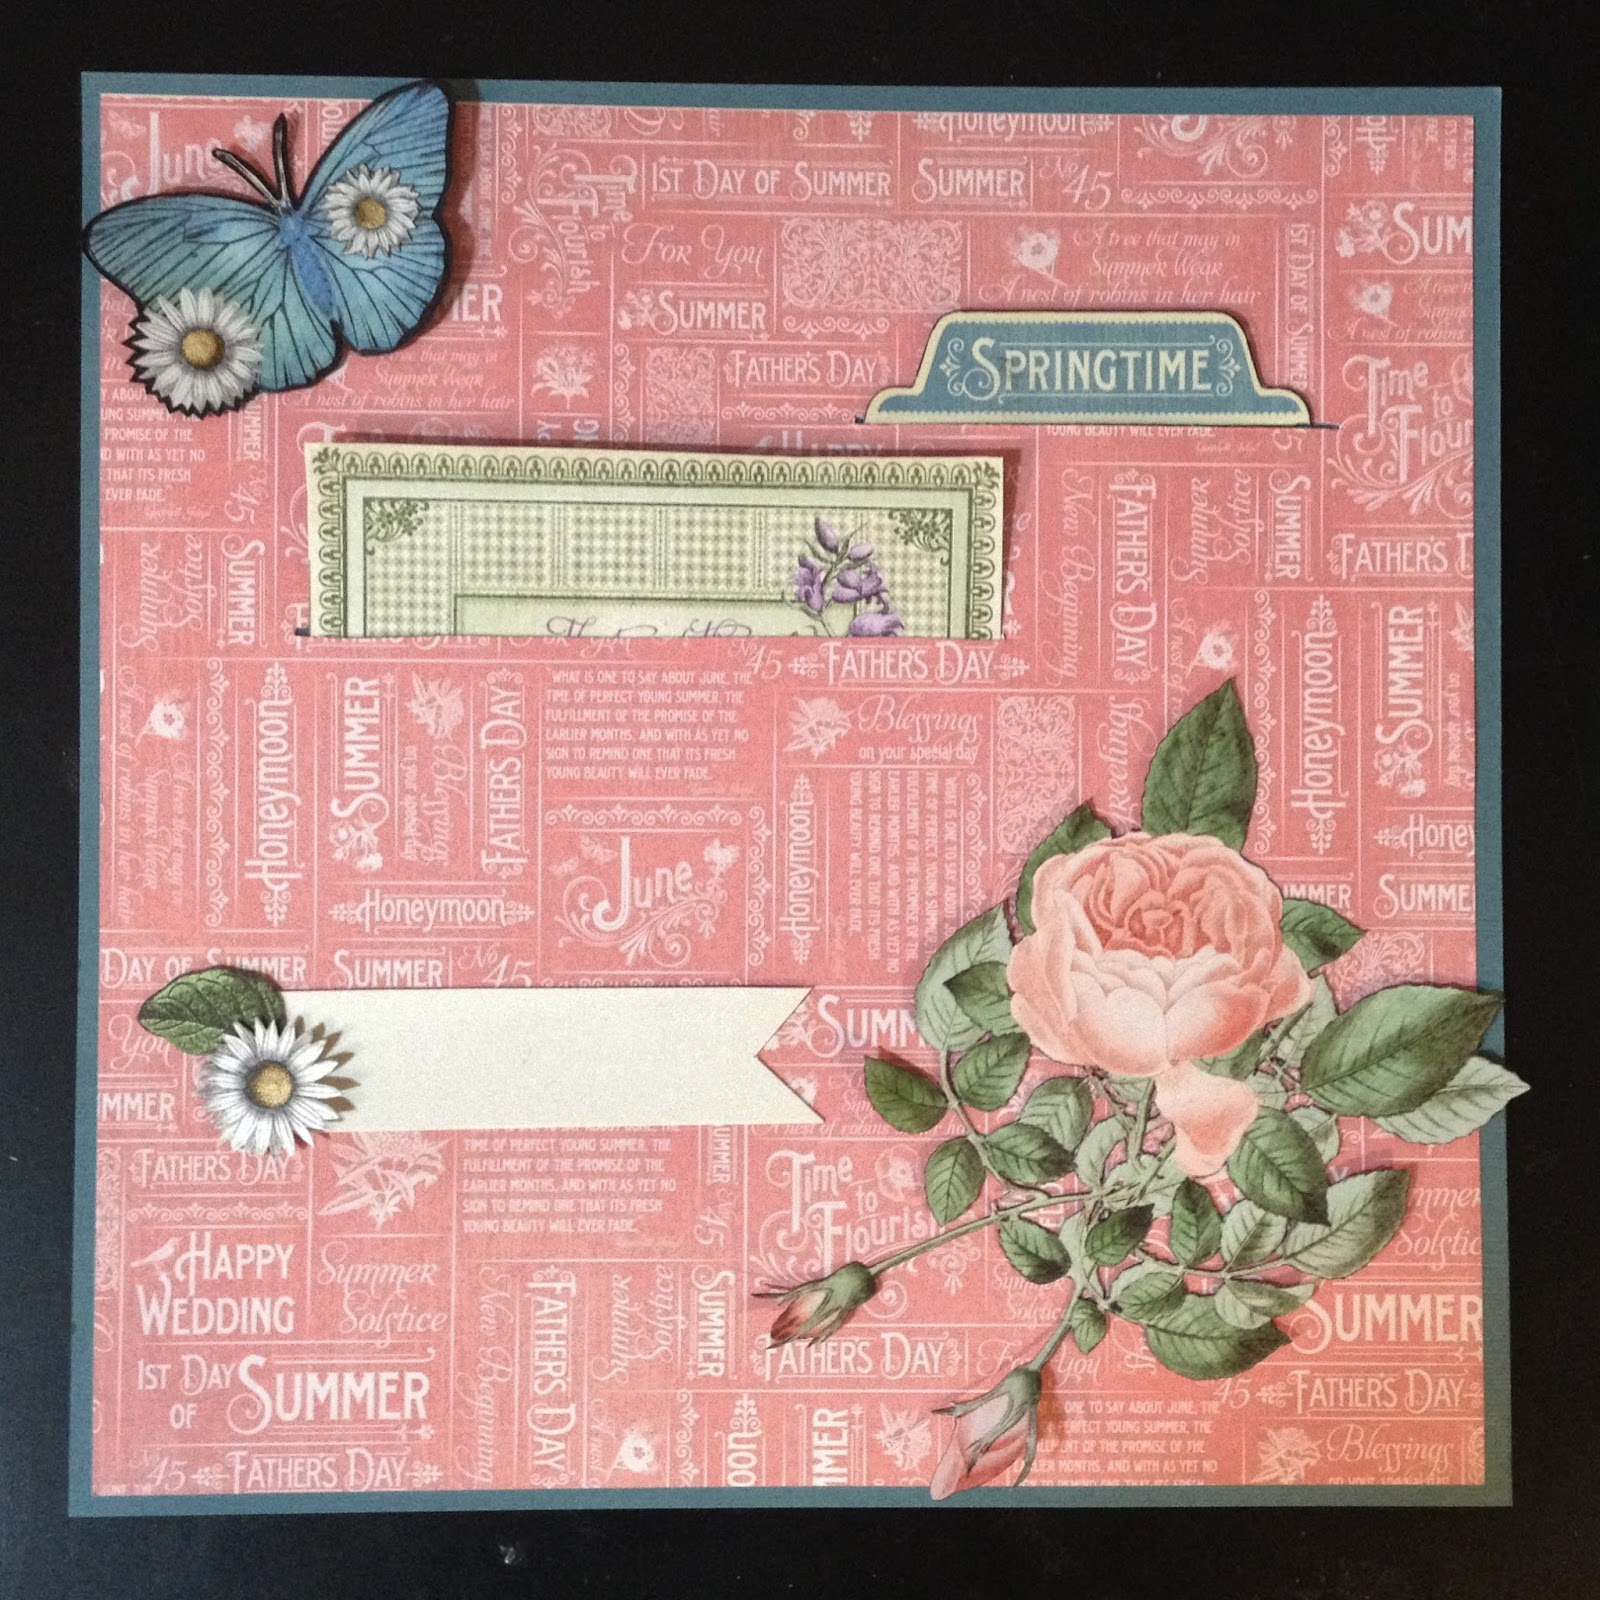 Howtomakecoversformini Albumsandml#commentform Paper Quilling How To Make